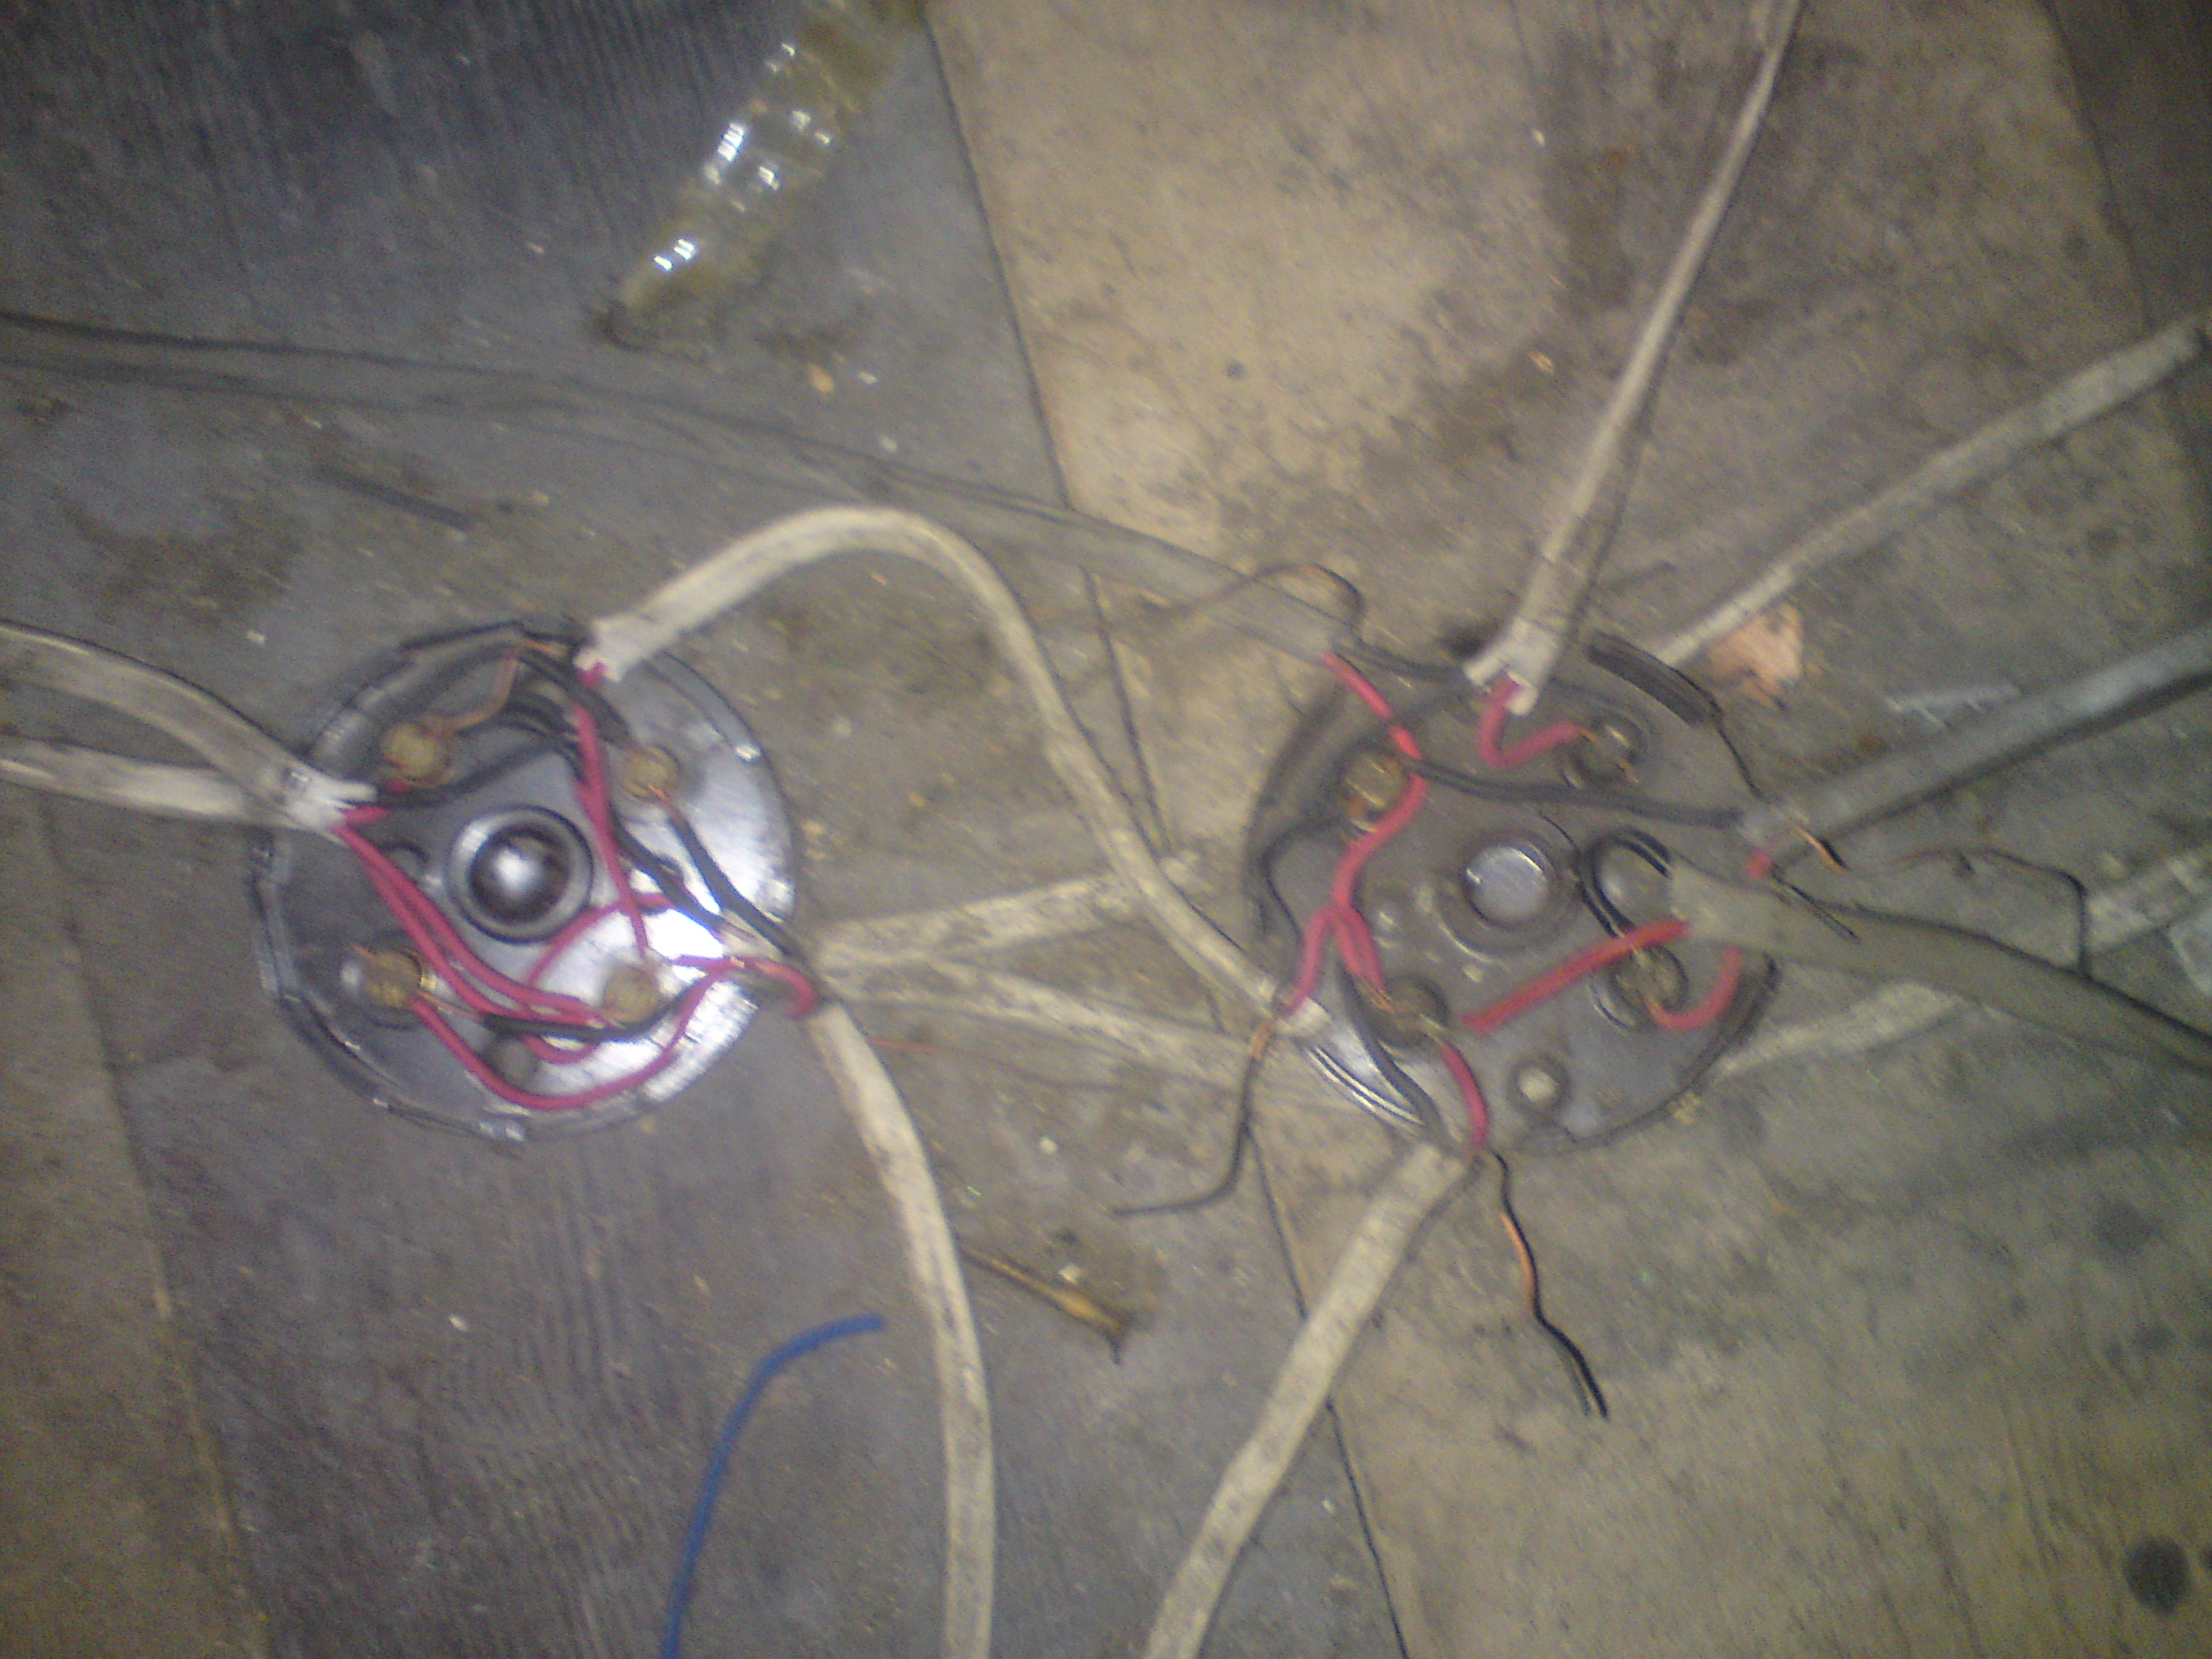 Electrical Test And Inspection Dangerous Wiring A Wall Light Ing Uk Including Wire The Bare Earth Wires Have Been Folded Back Not Connected At All